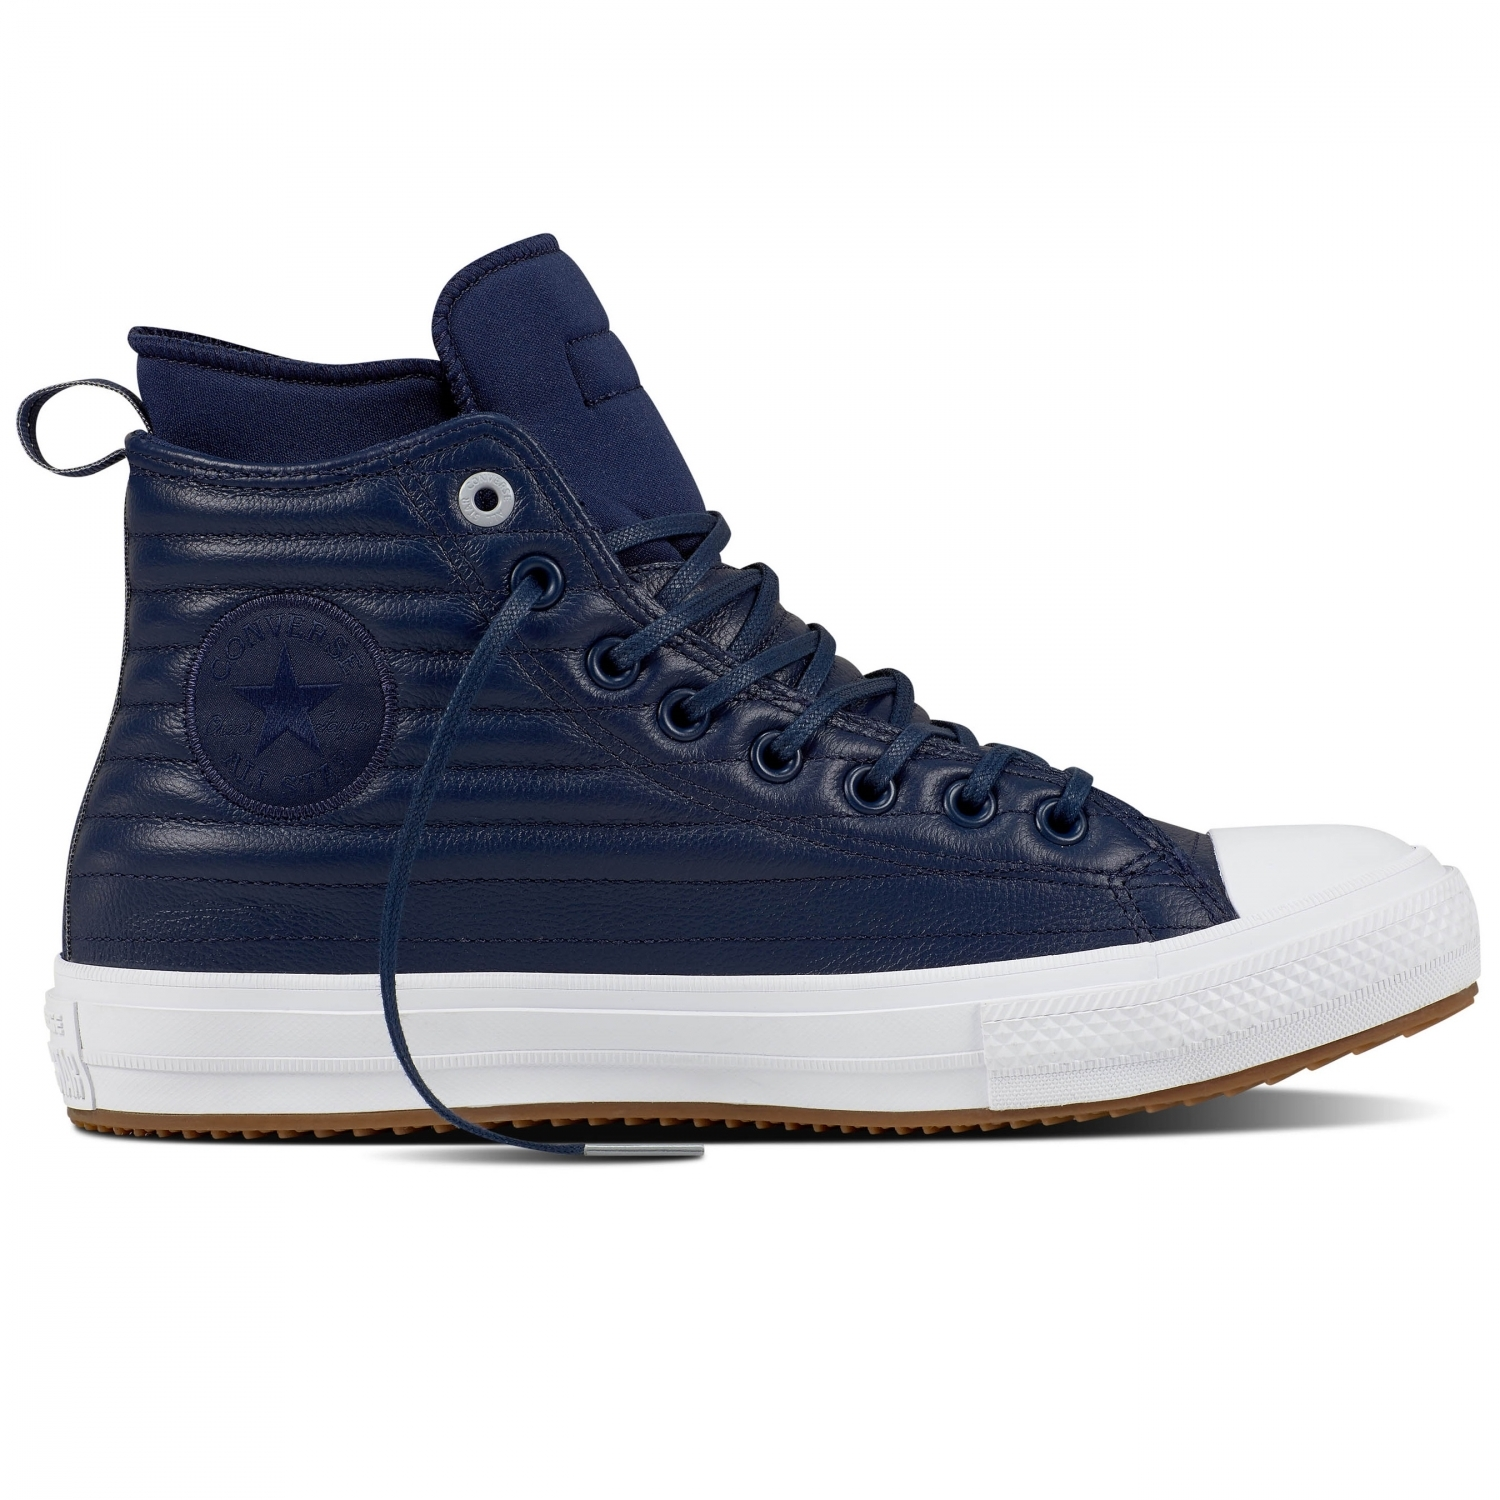 the latest b63d3 ef5f8 converse chuck taylor all star waterpr 157490c 1955.jpg